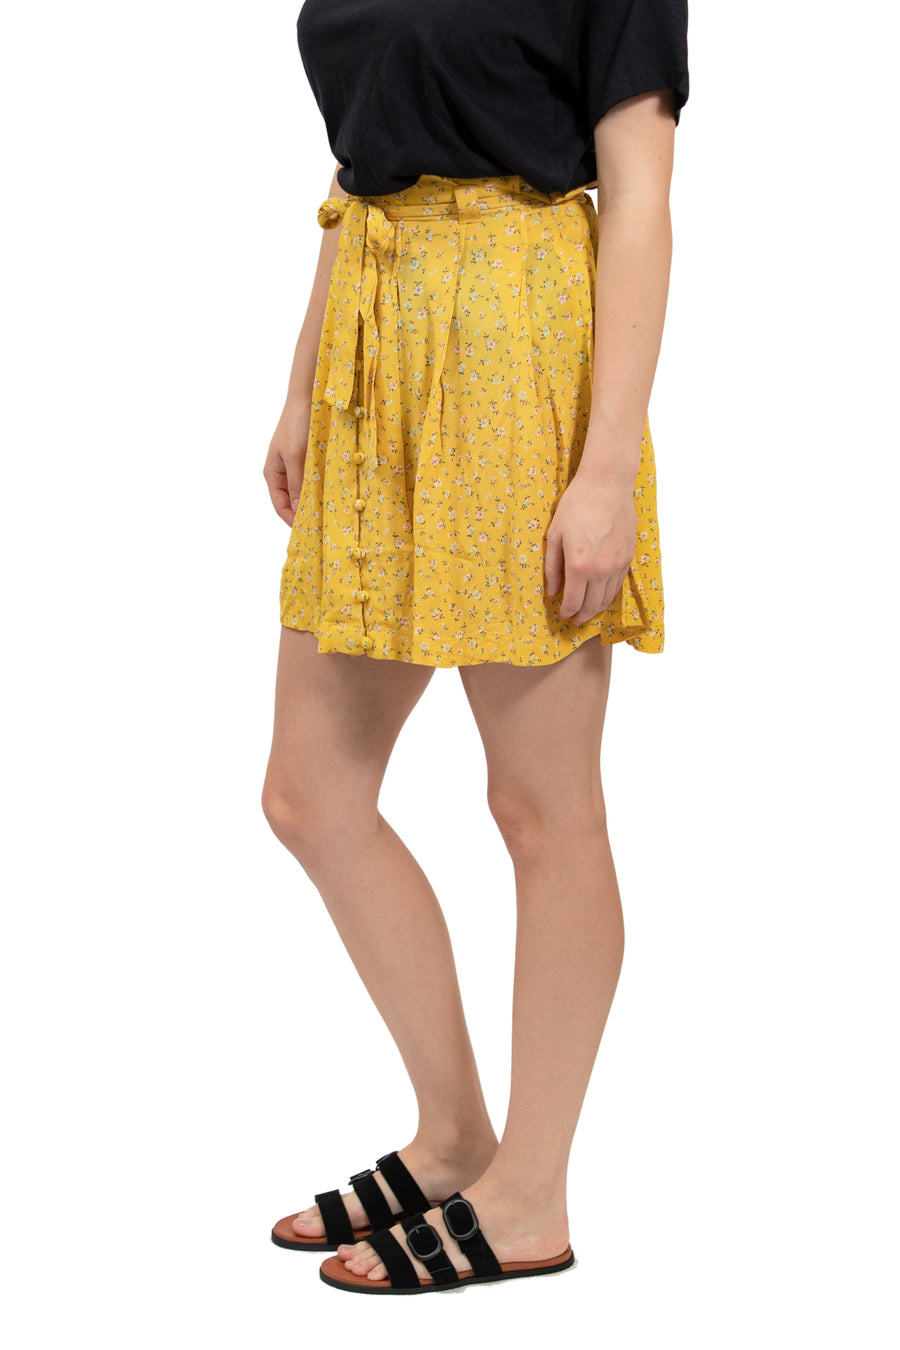 Volcom Hey Bud Skirt